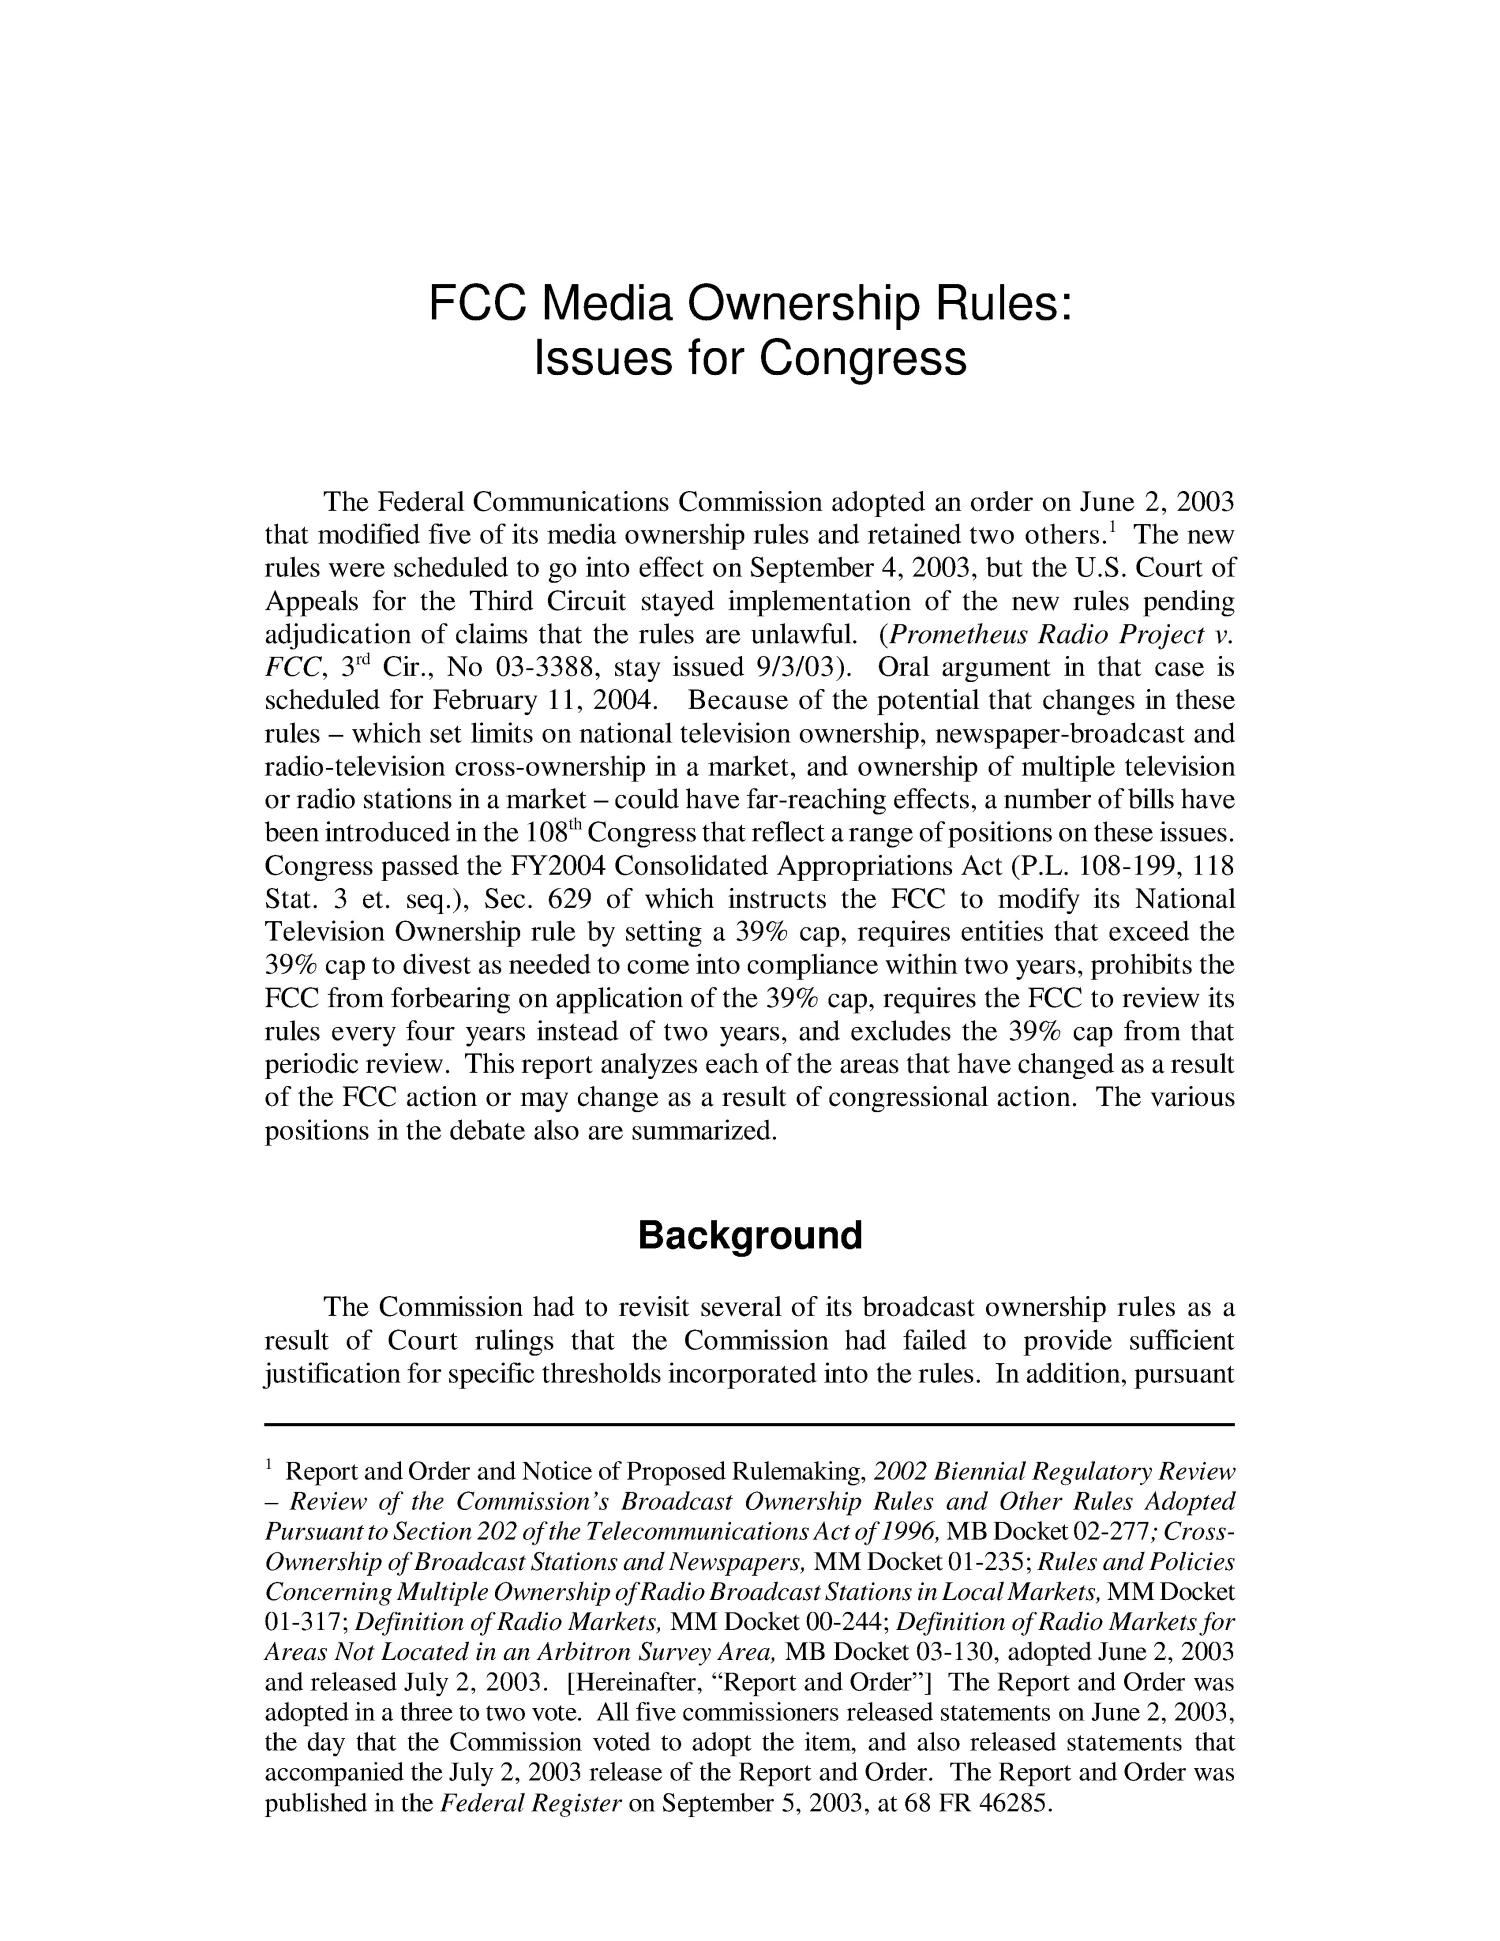 FCC Media Ownership Rules: Issues for Congress                                                                                                      [Sequence #]: 4 of 22